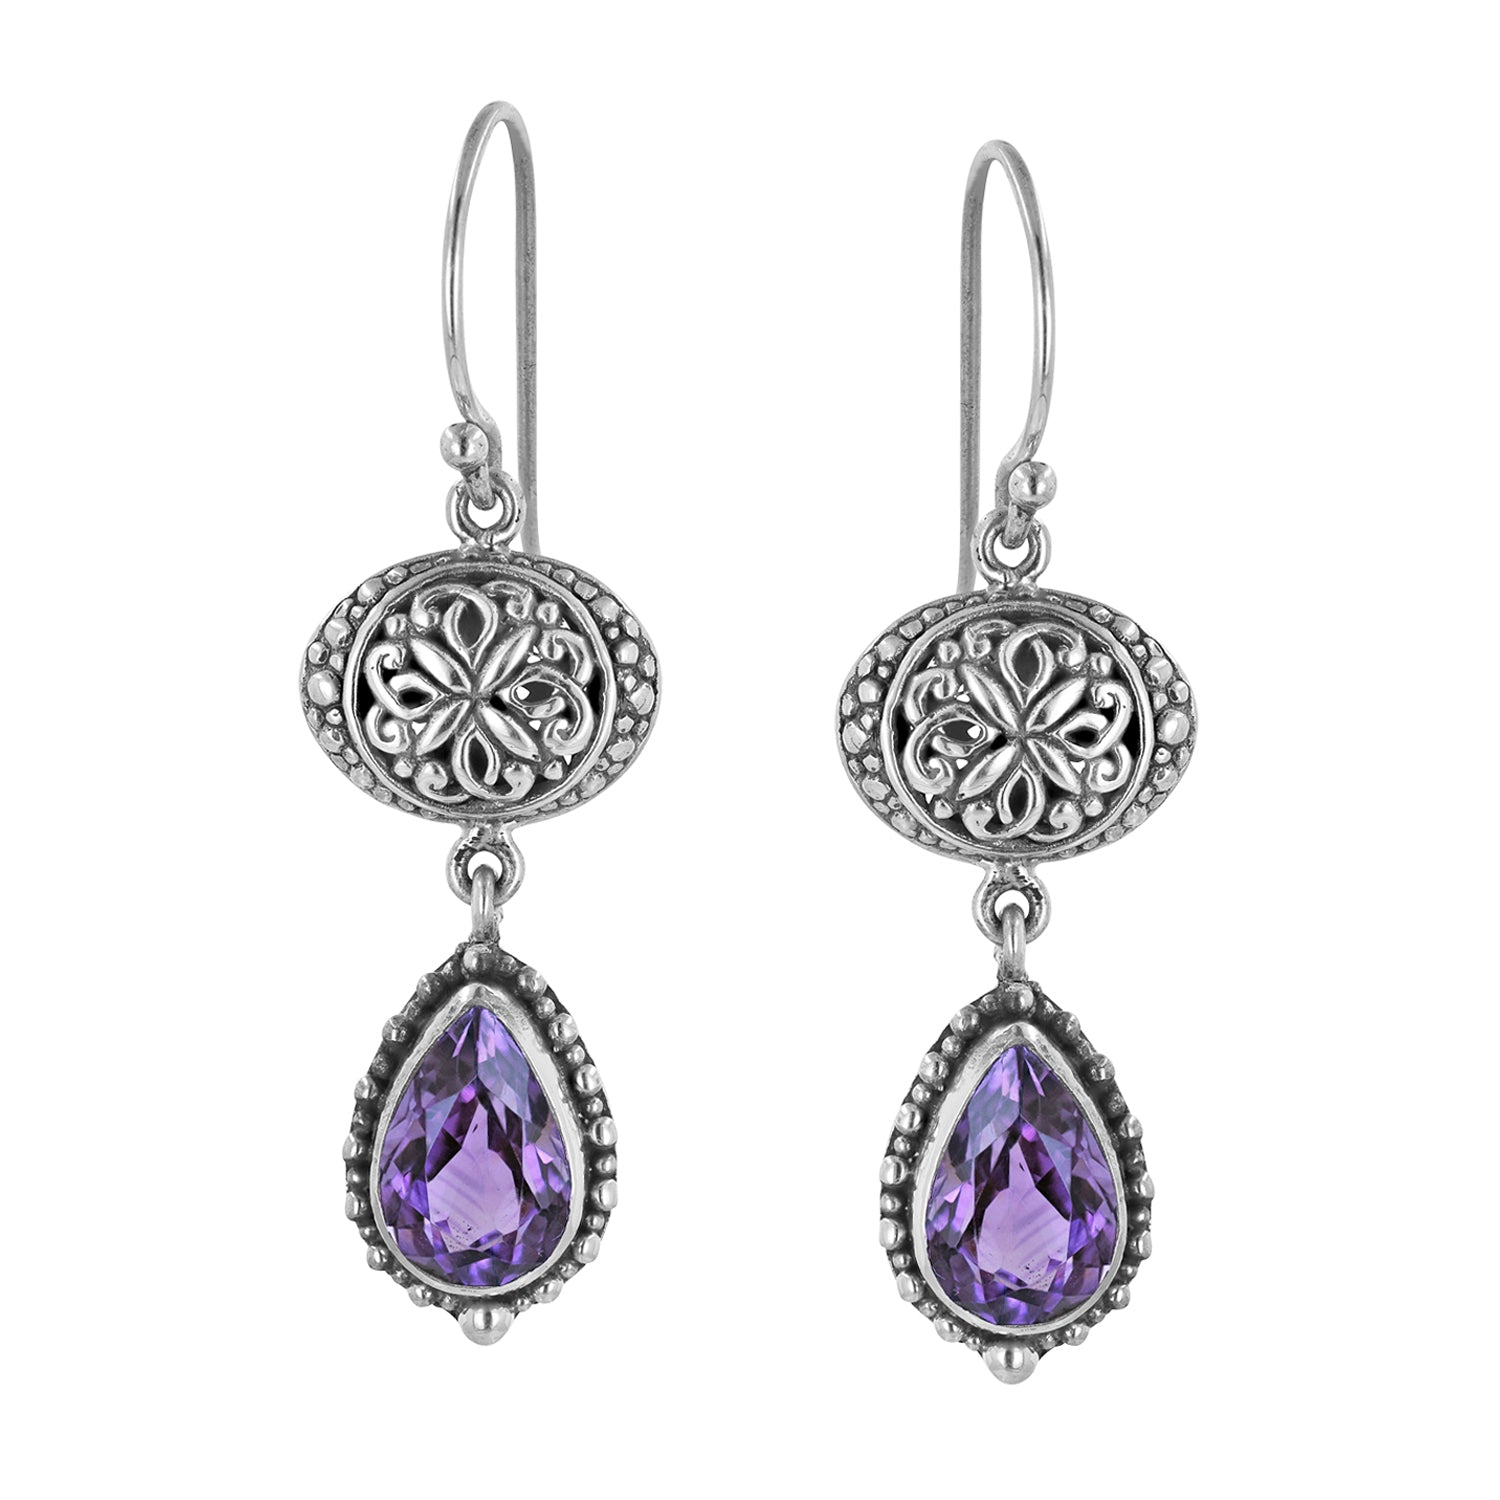 Sterling Silver Dangle Earrings with Bali Bead and Pear Shaped Amethyst